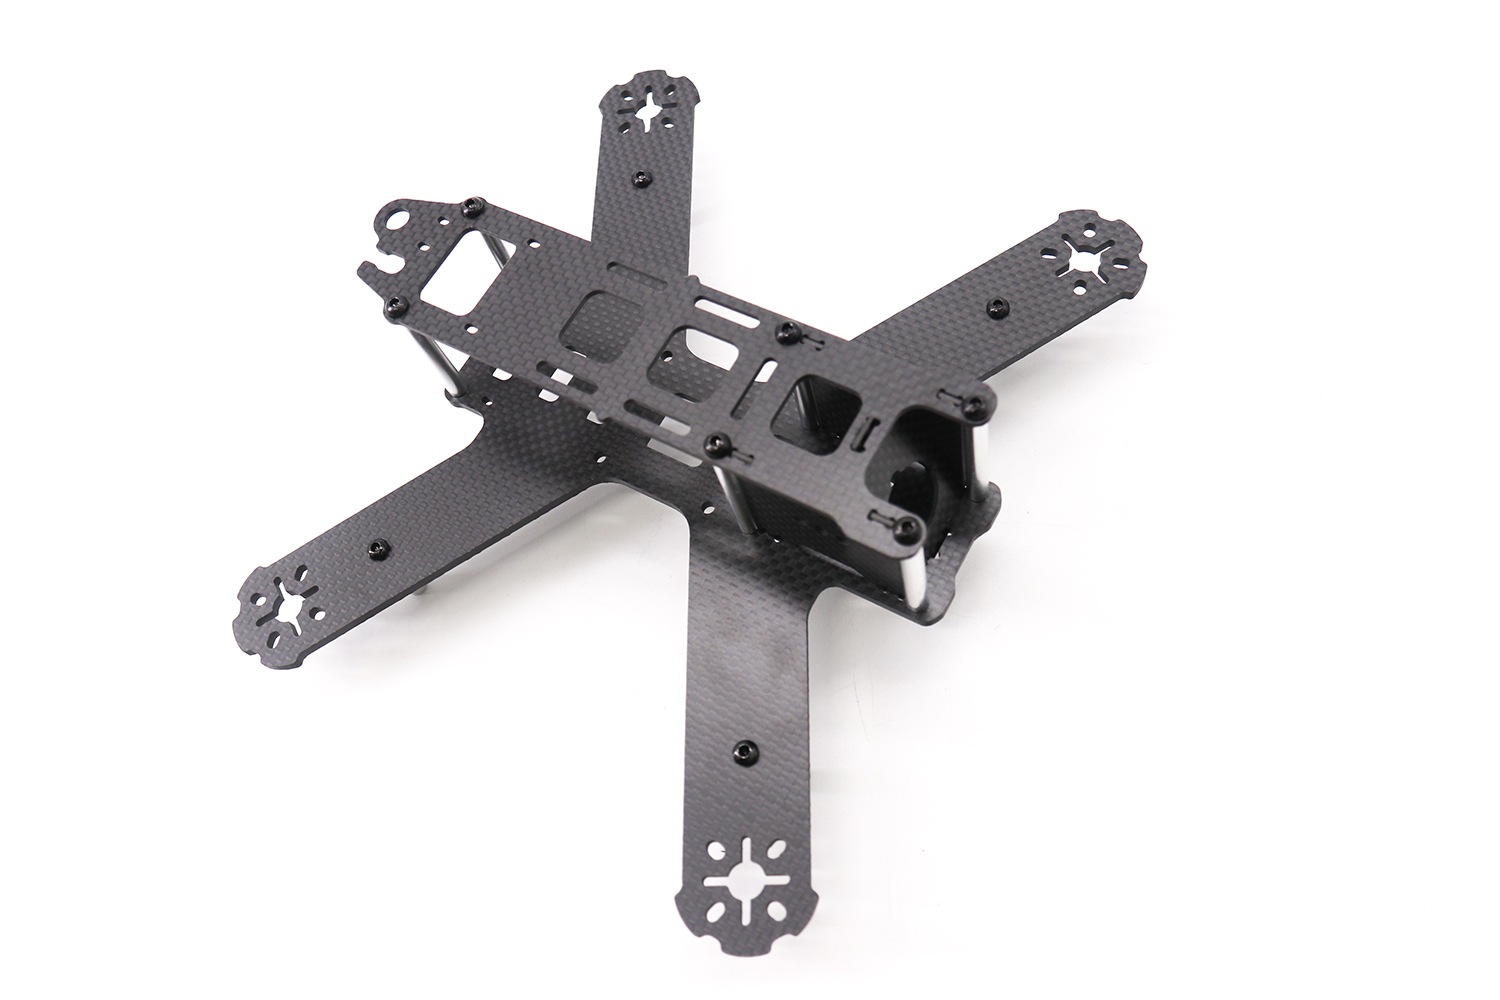 TCMM 5 Inch Drone Frame LS-210 Wheelbase 210mm Bottom Fuselage In One Make 3mm Carbon Fiber Arm For Rc Drone